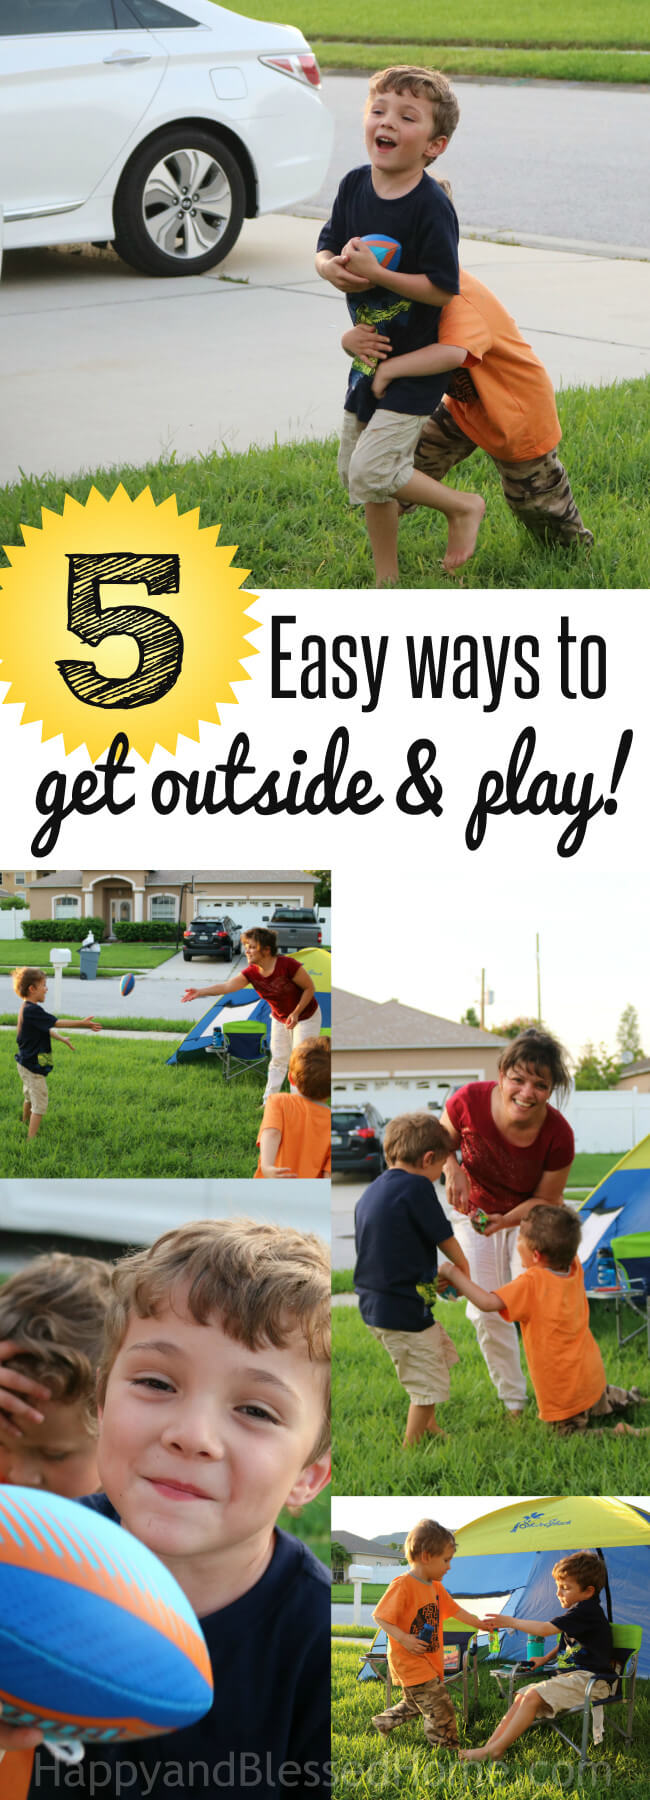 5 Easy Ways to get outside and PLAY